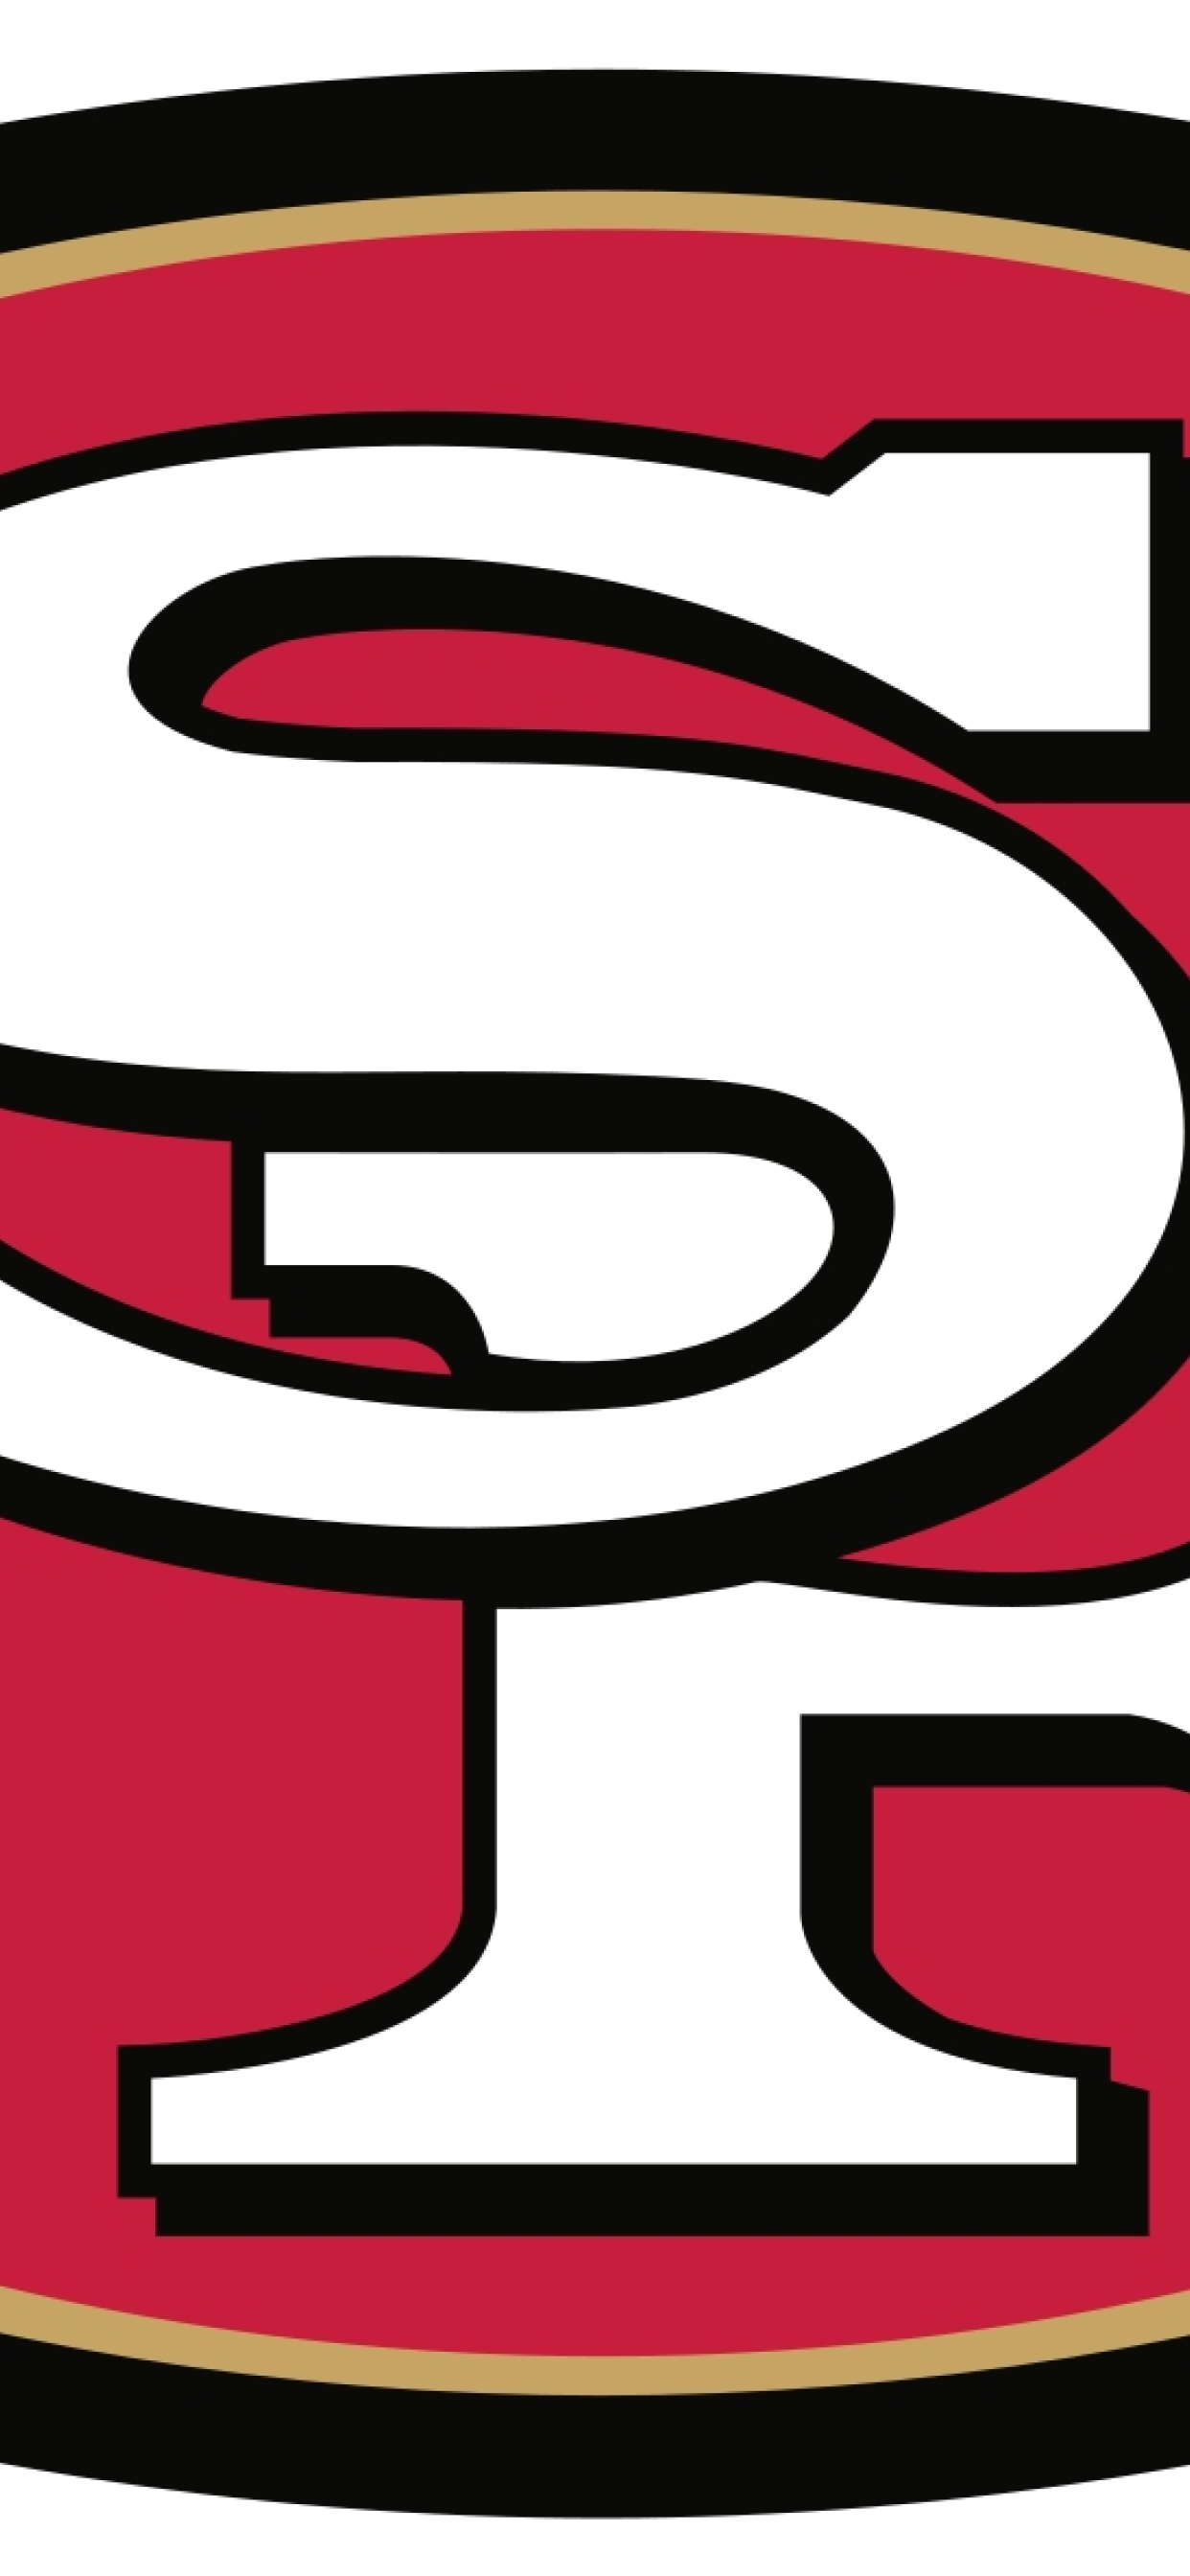 1242x2688 San Francisco 49ers Football Logo Iphone Xs Max Wallpaper Hd Sports 4k Wallpapers Images Photos And Background